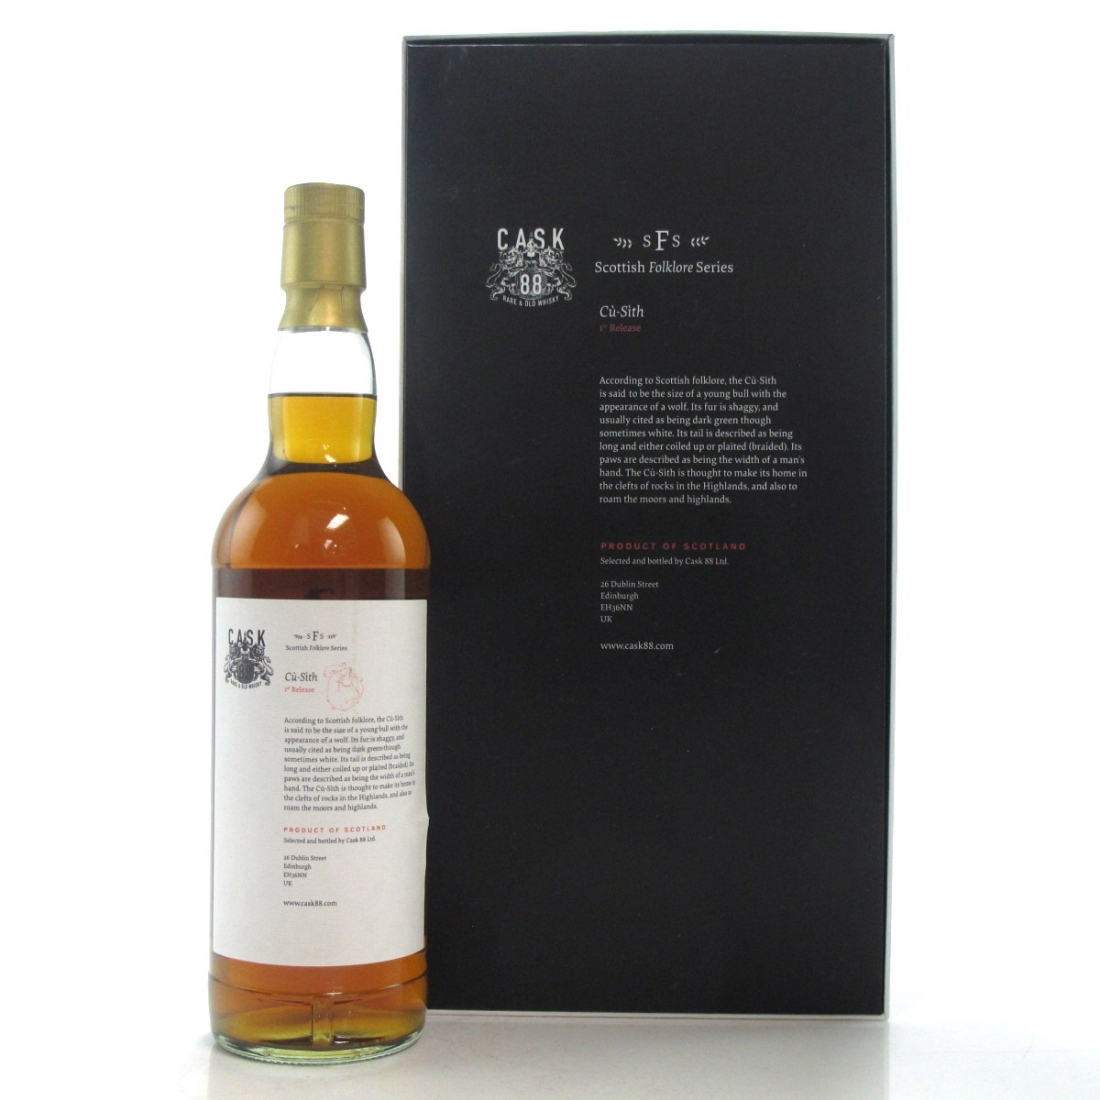 Ben Nevis 1972 Cask 88 45 Year Old / Scottish Folklore Series 1st Release